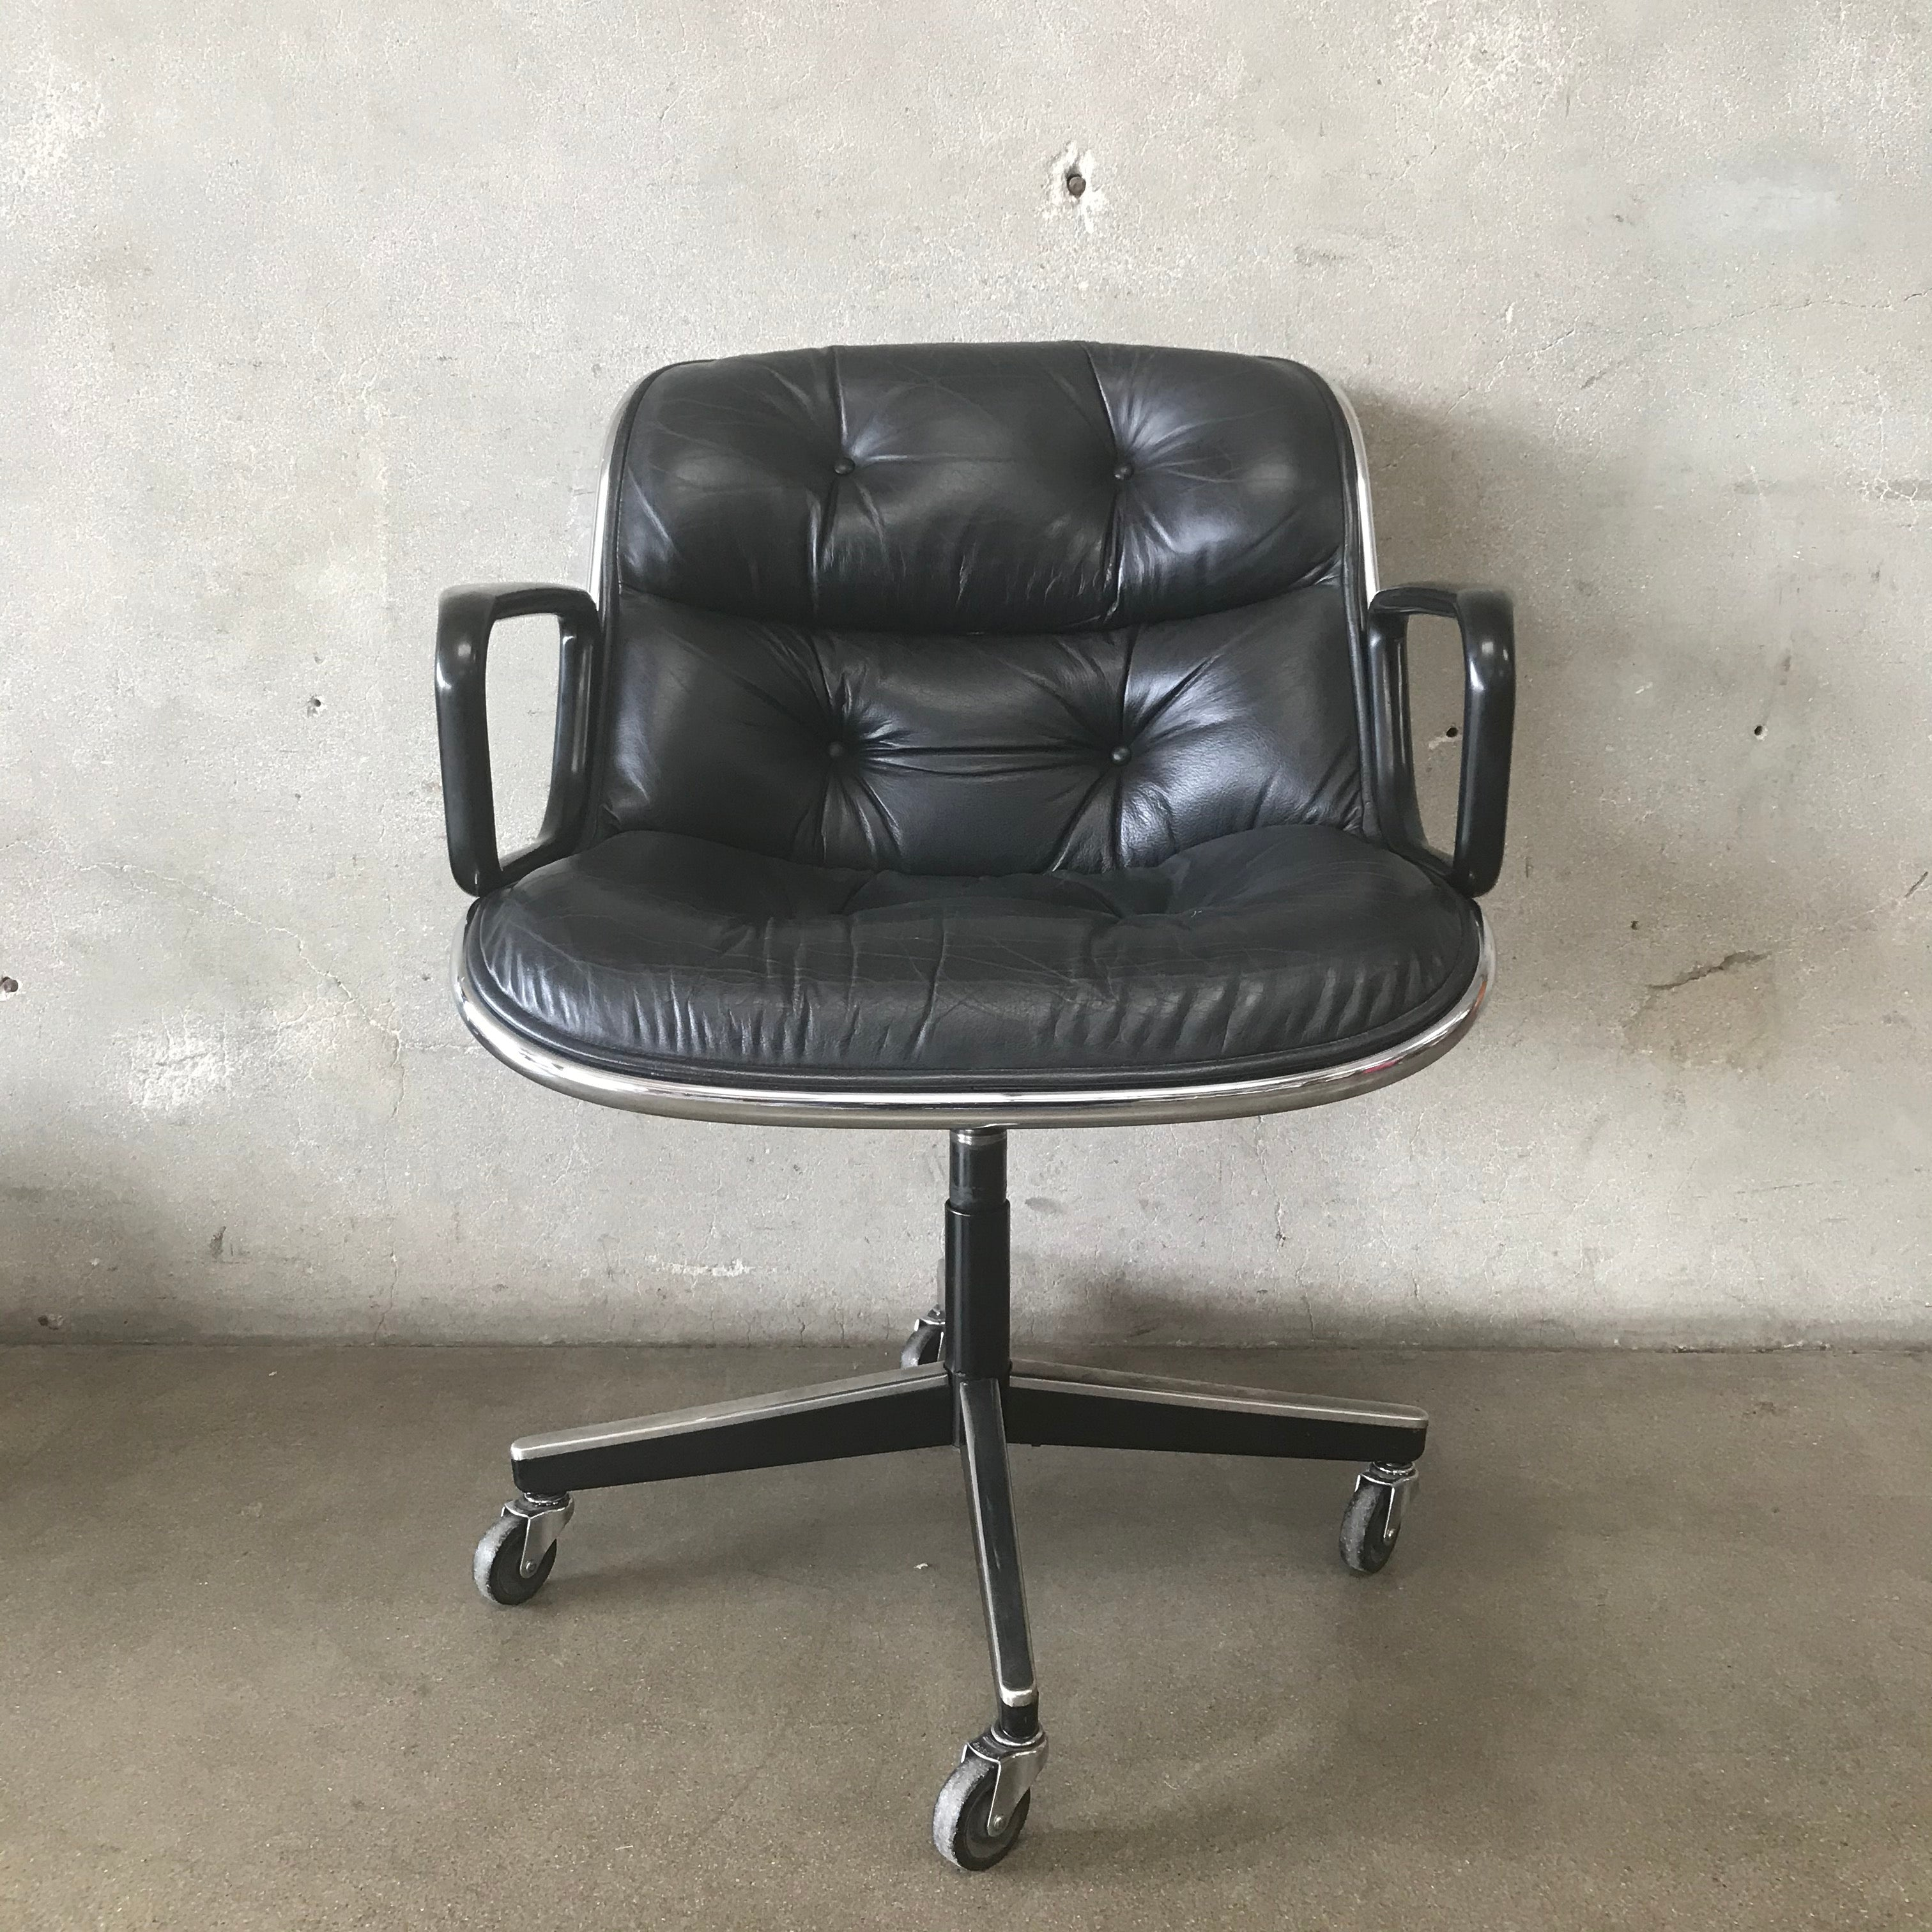 Vintage Charles Pollock For Knoll Desk Chair